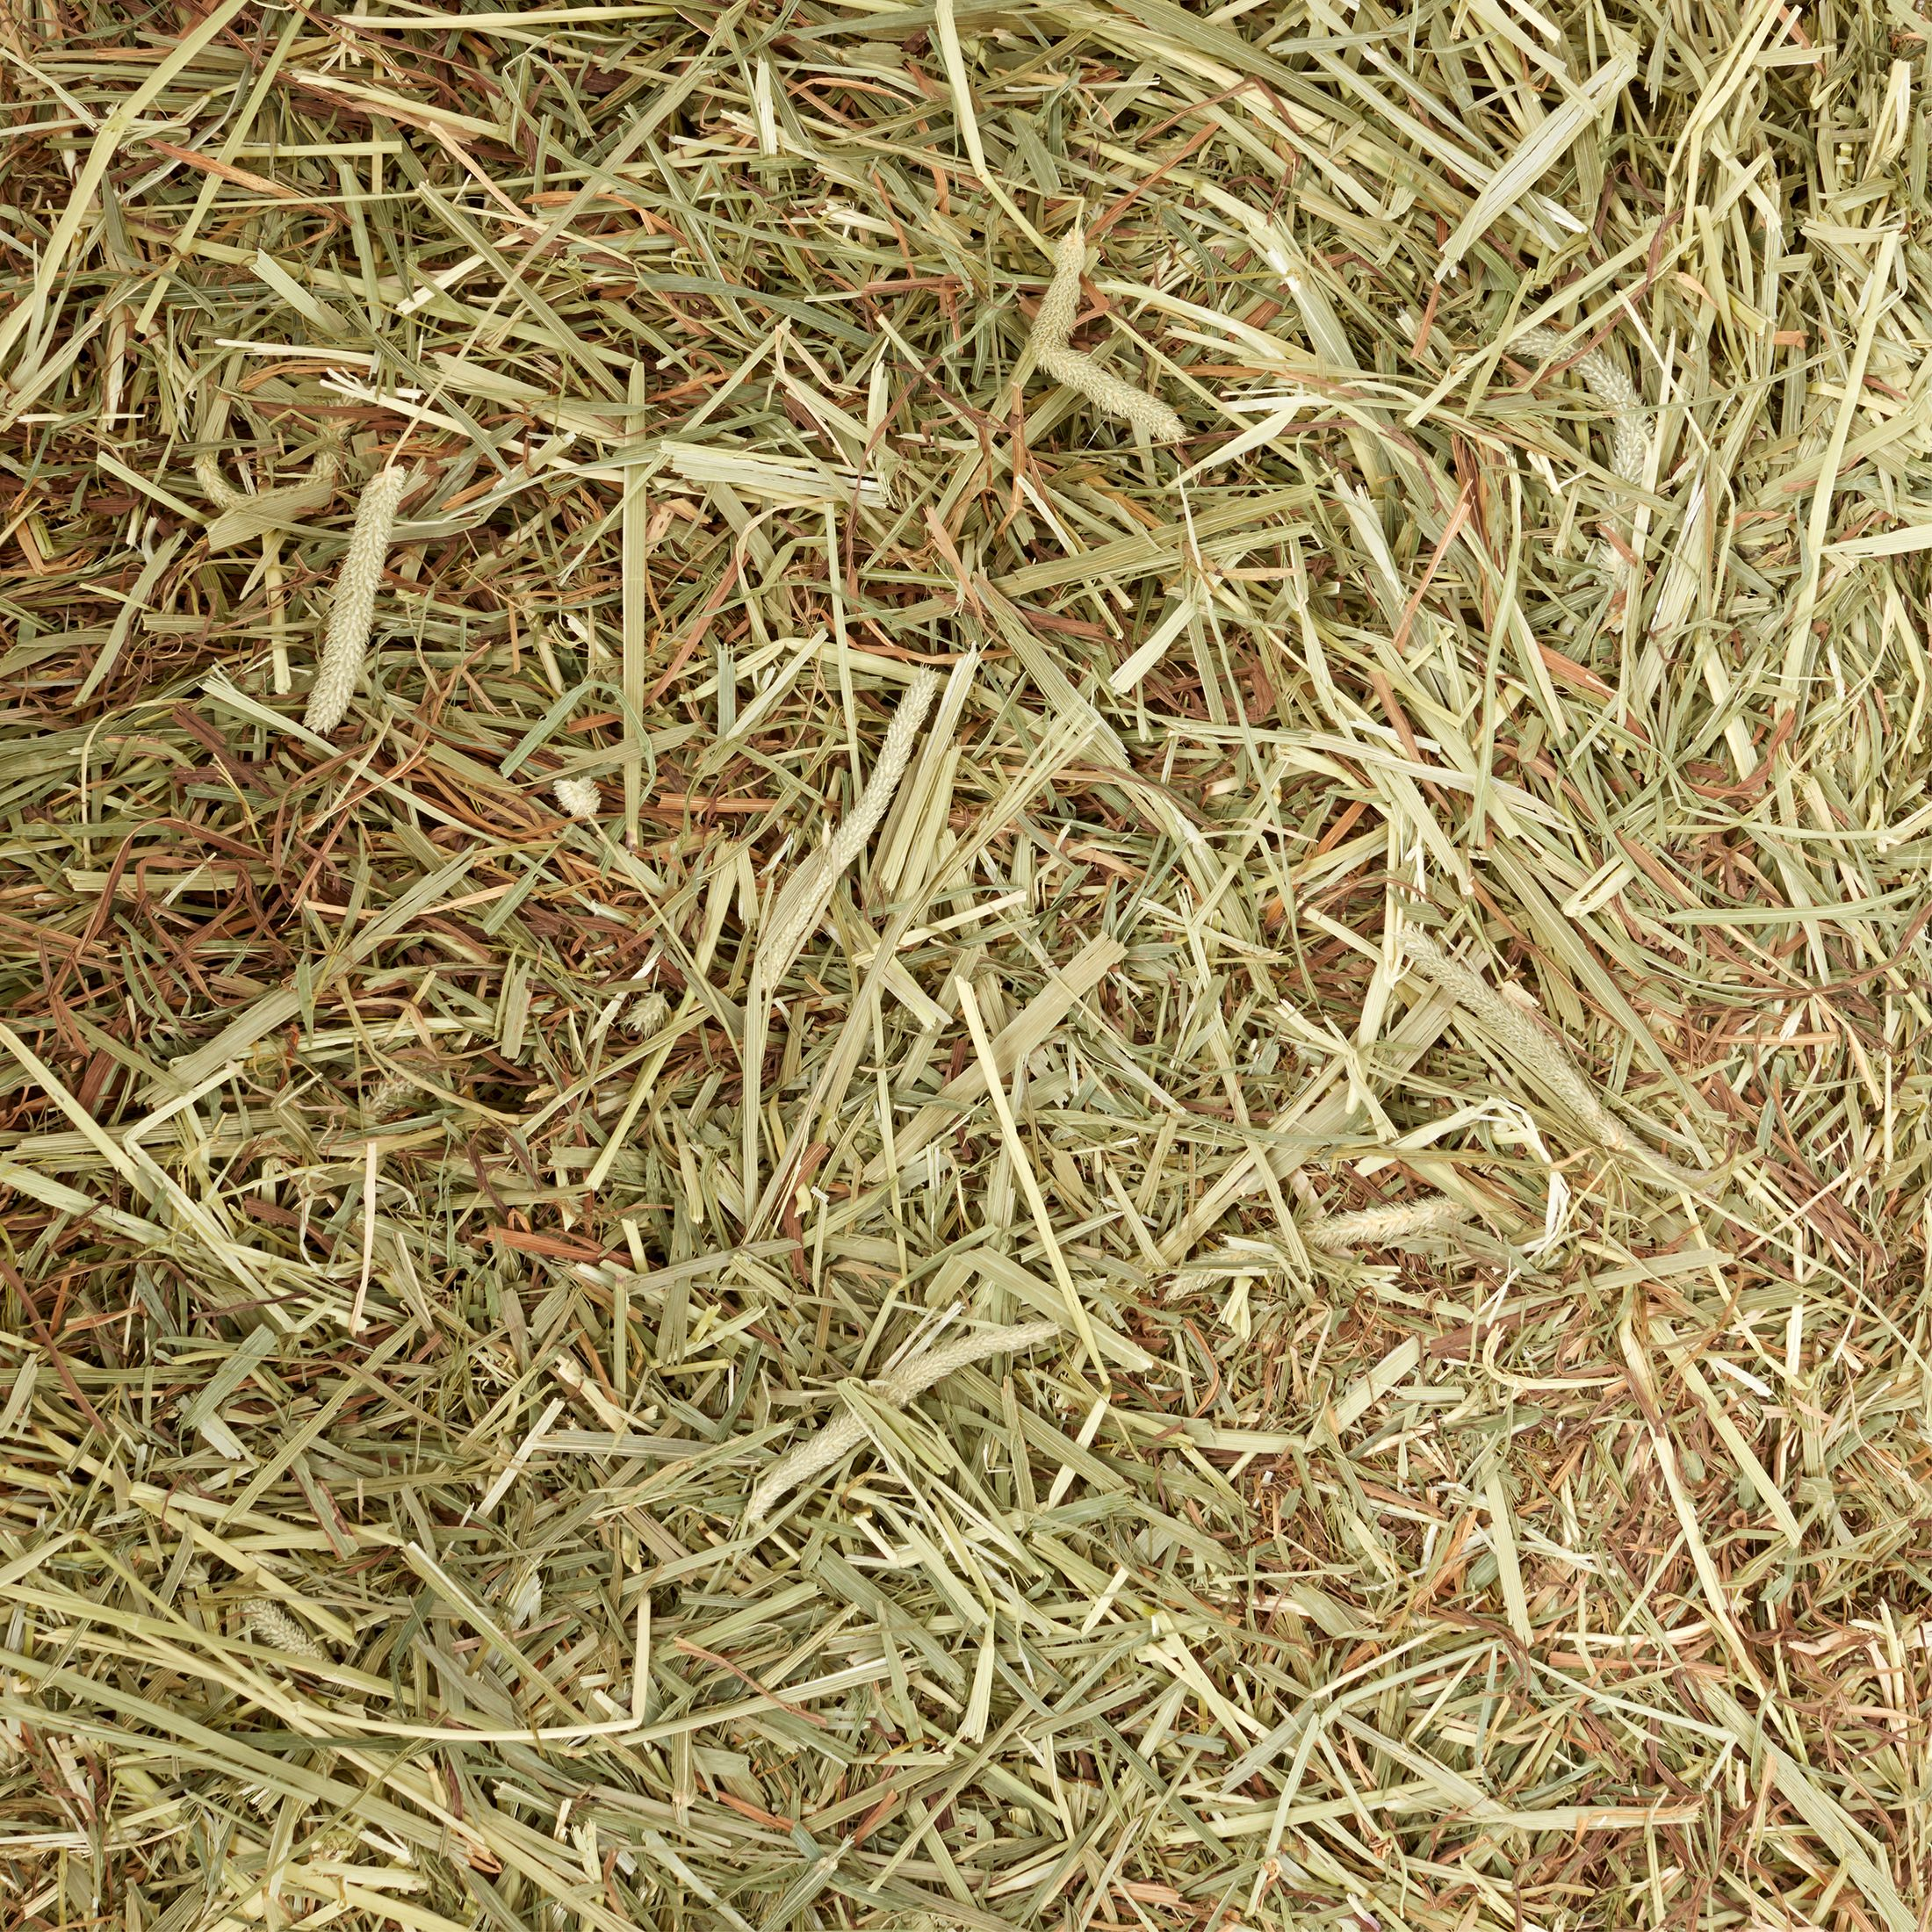 Oxbow Western Timothy Hay Dry Small Animal Food, 25 Lb